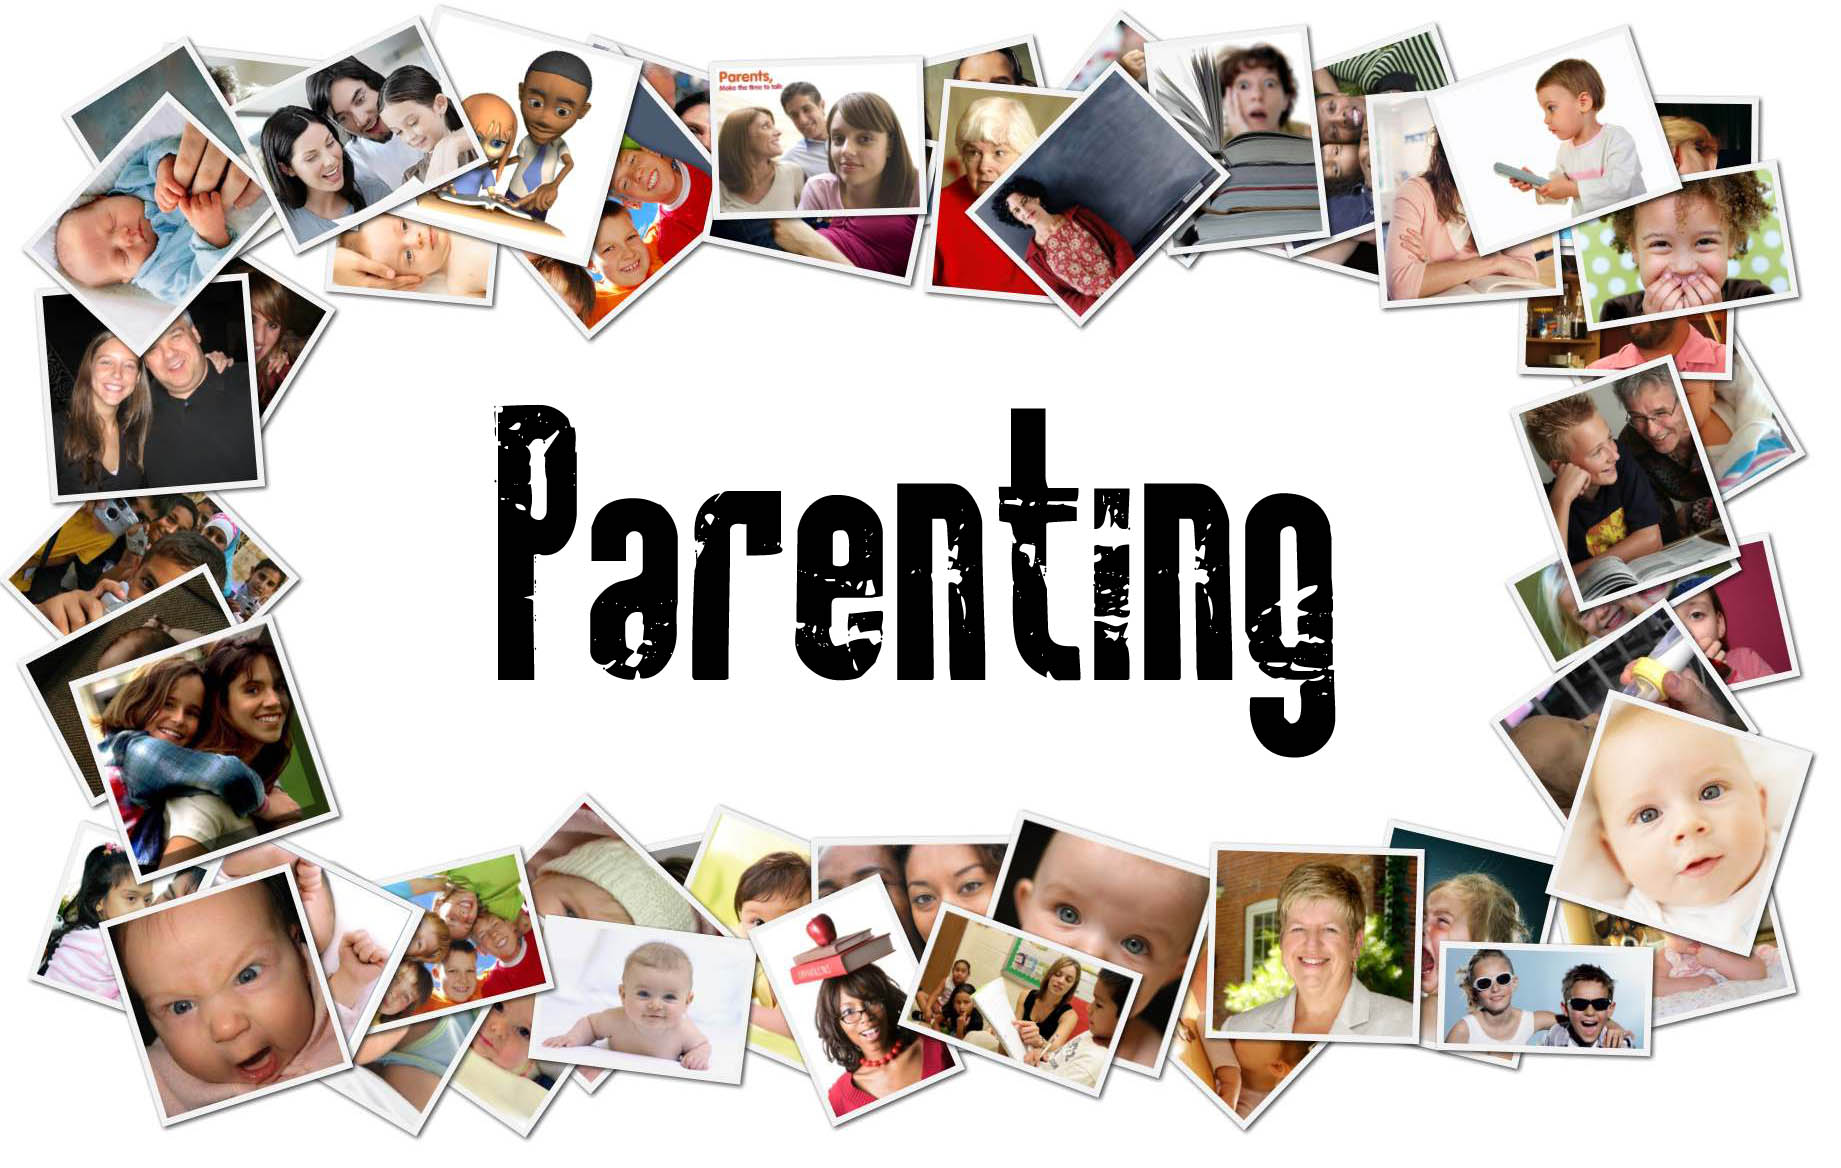 parenting, teen, rules, parent, child